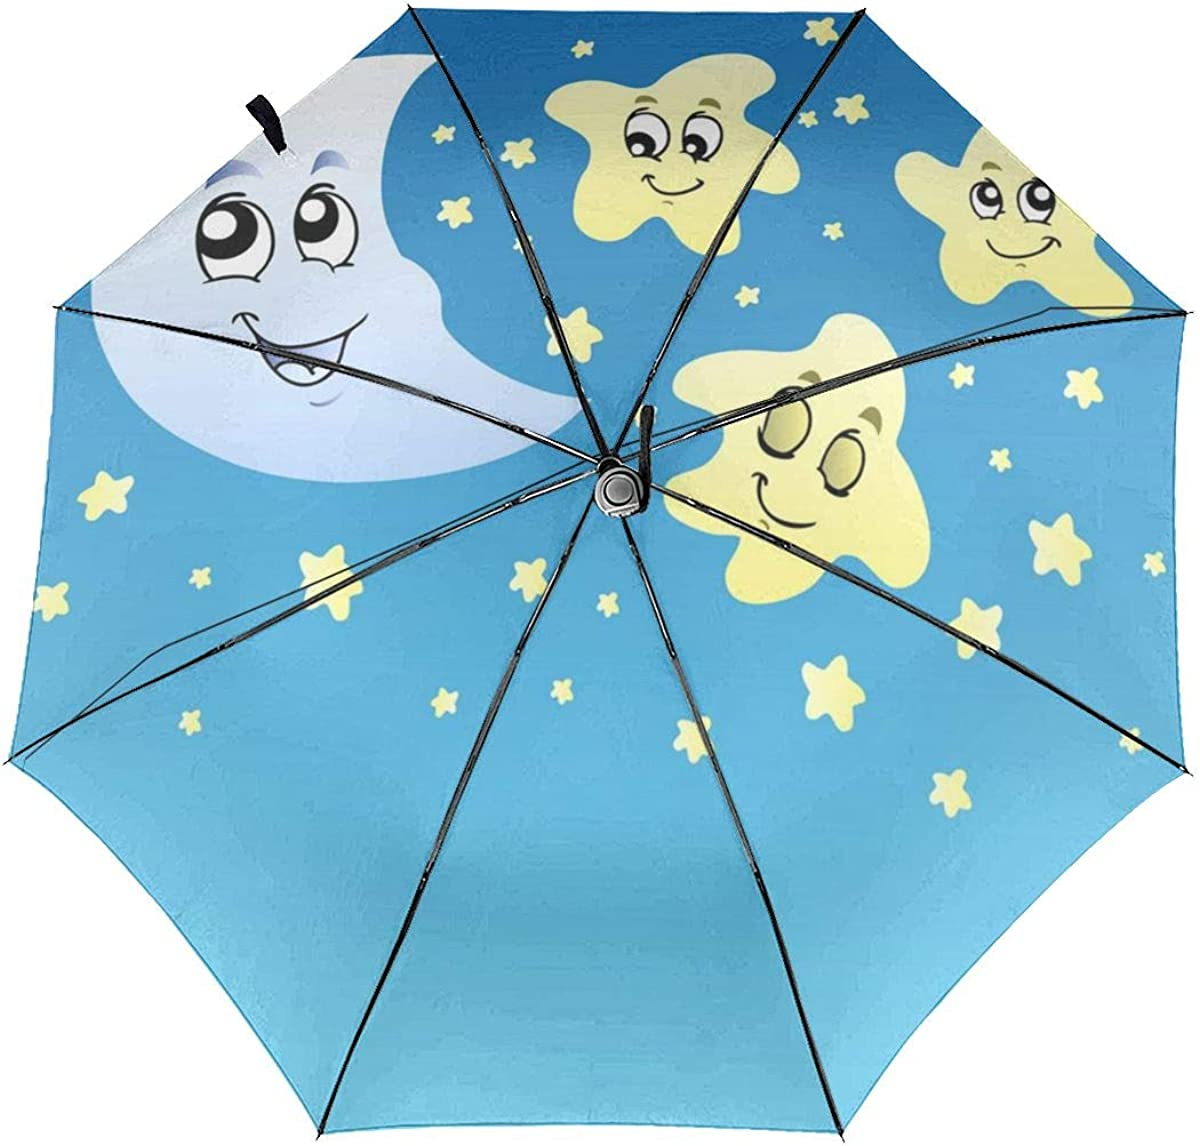 Night Sky With Cute Stars And Moon Compact Travel Umbrella Windproof Reinforced Canopy 8 Ribs Umbrella Auto Open And Close Button Customized